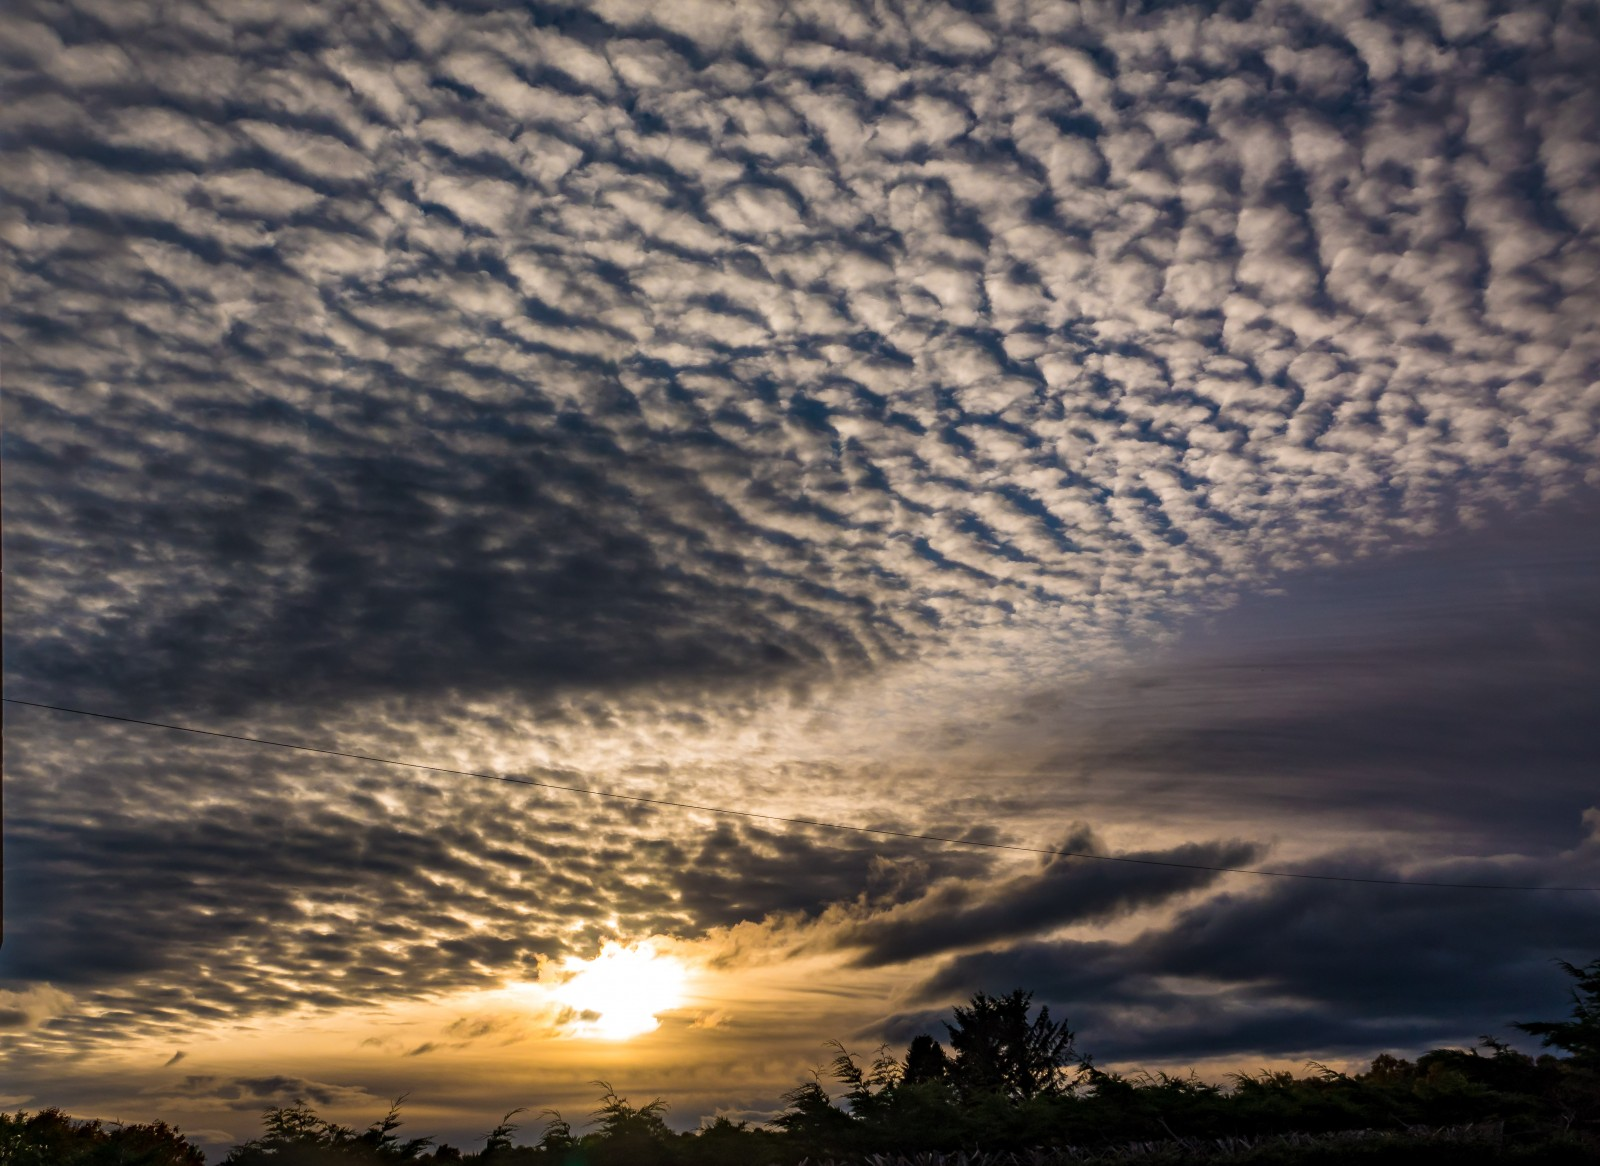 A fine mackerel sky earlier this month